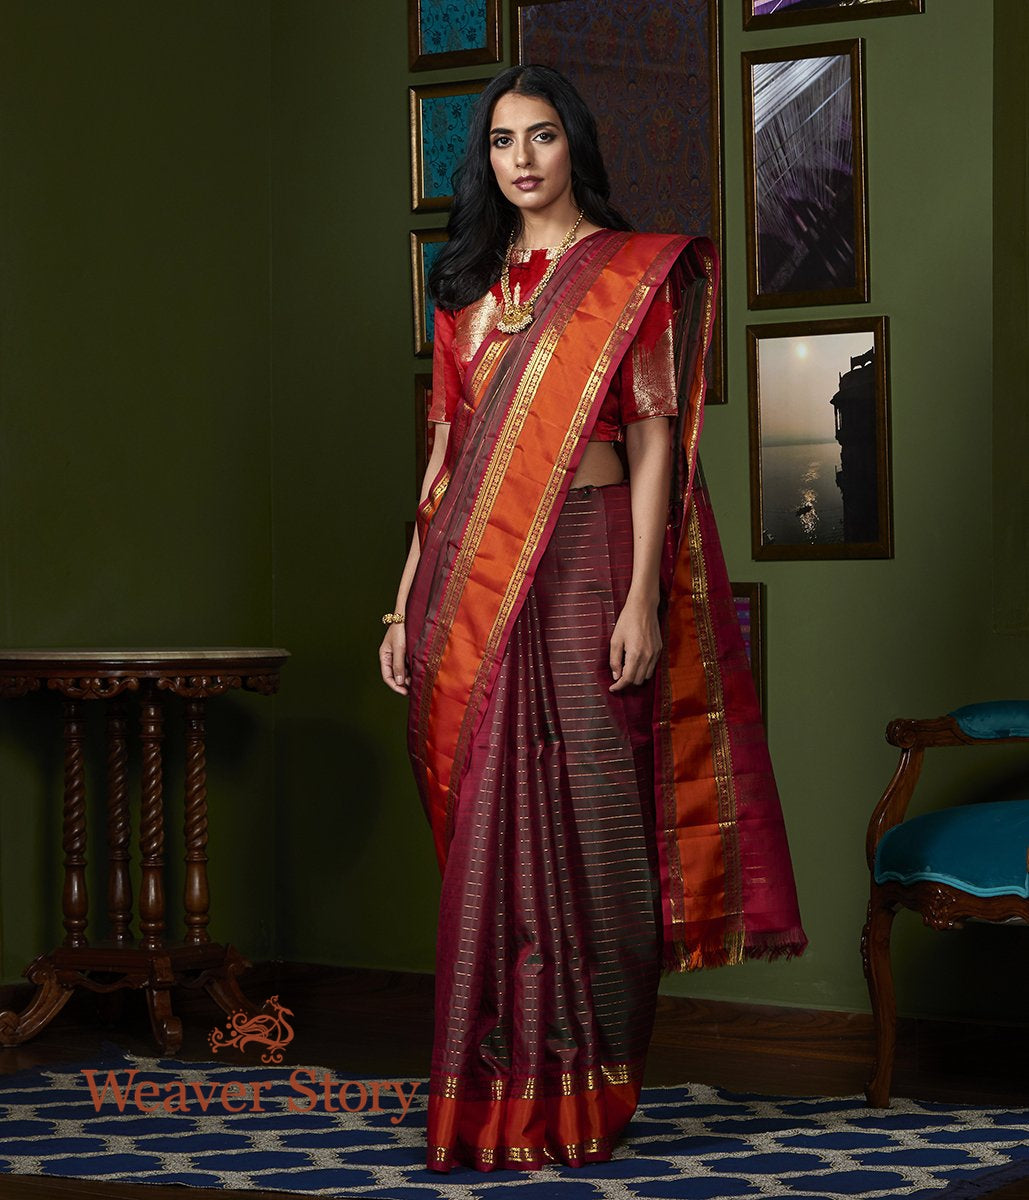 Handwoven Green and Red Dual Tone Kanjivaram Silk Saree with Orange and Red Border